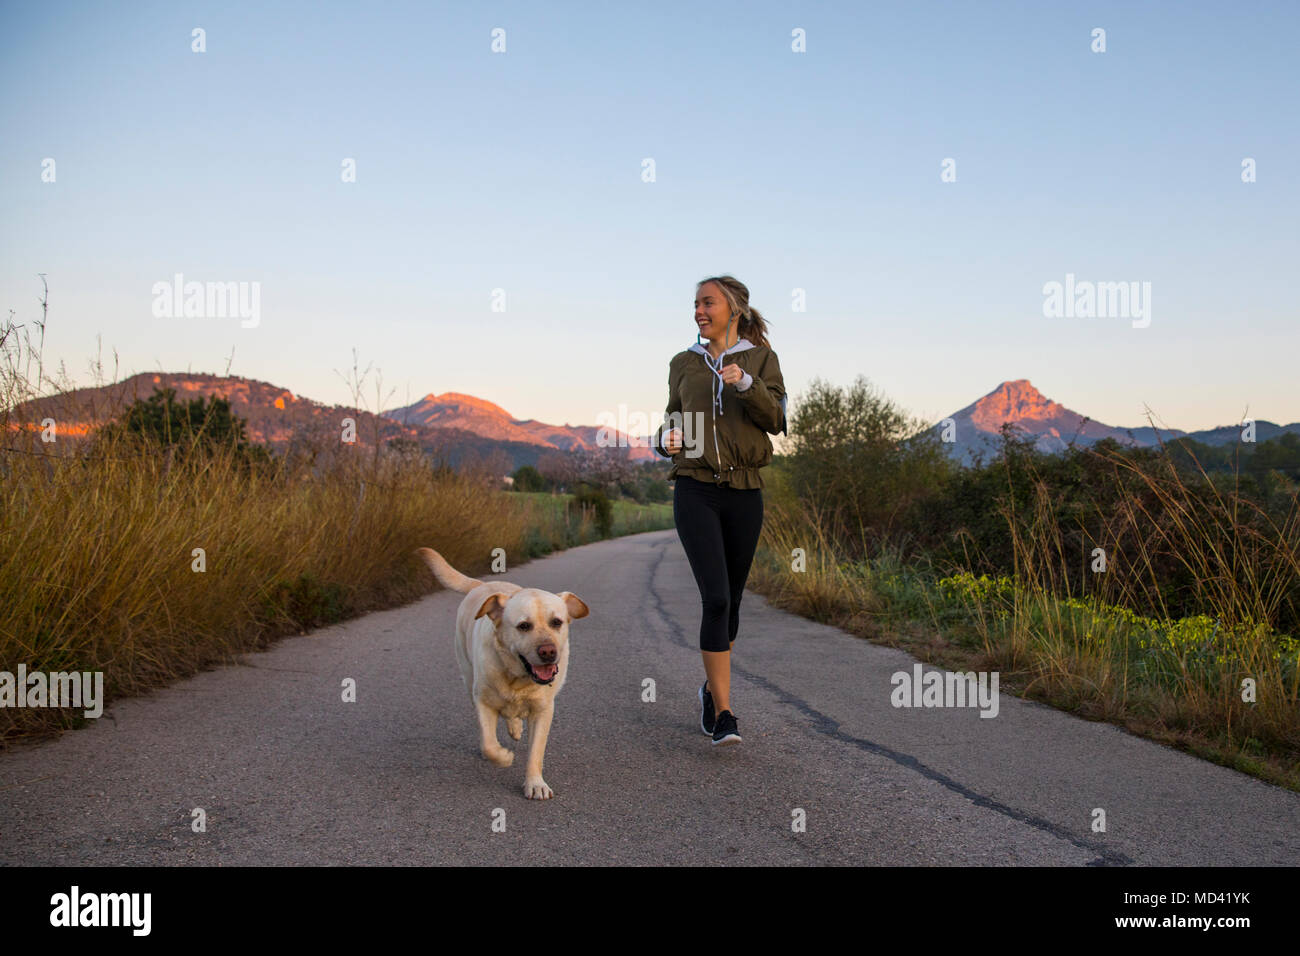 Young woman running along rural road with pet dog - Stock Image